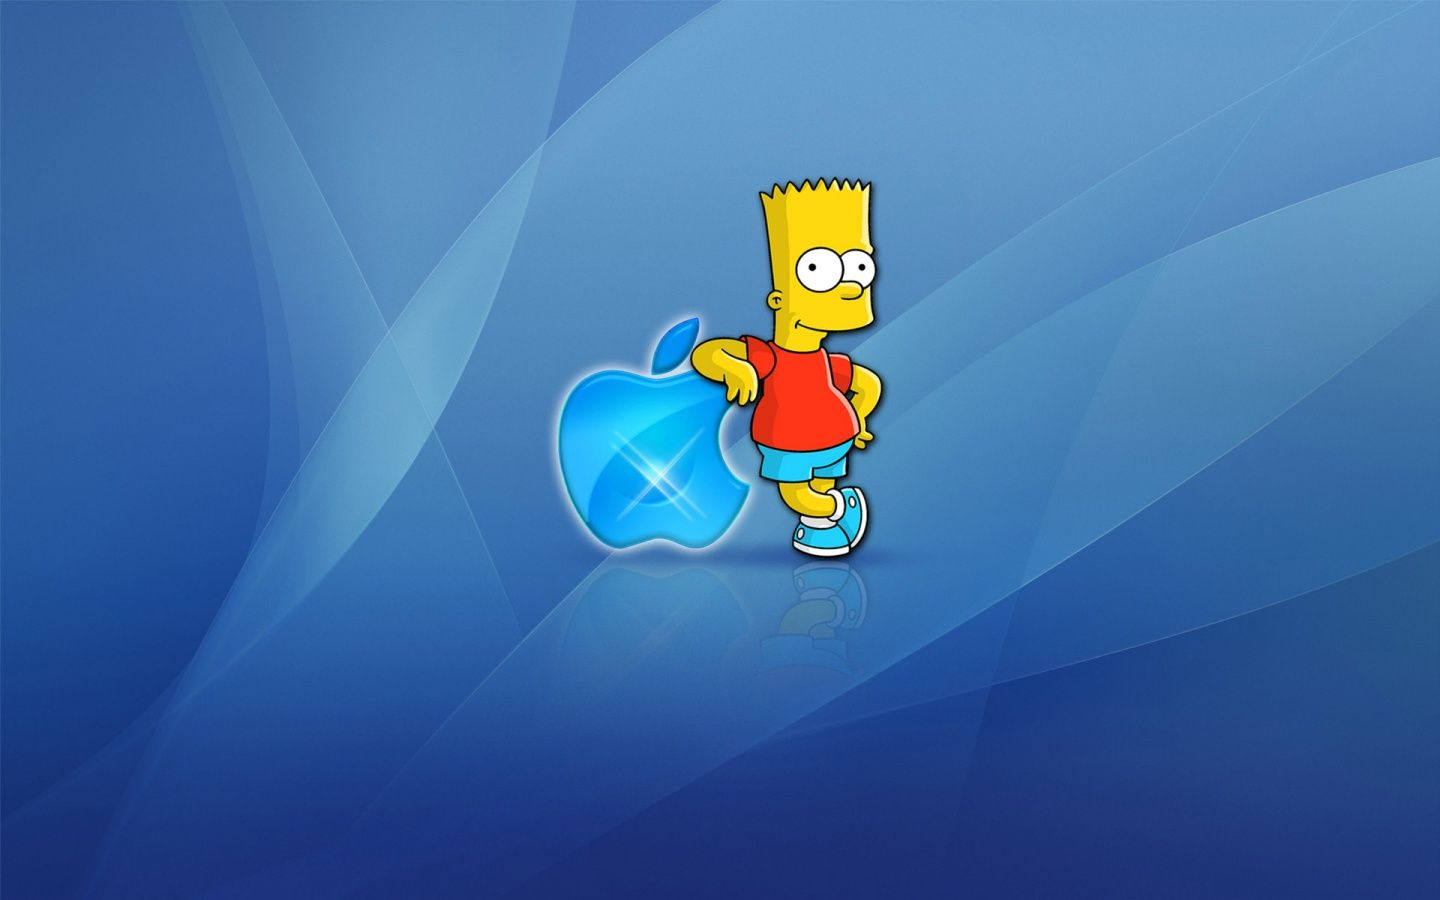 Bart Simpson Apple Logo Cartoon Wallpaper Funny Cartoon Images Hd Cool Wallpapers